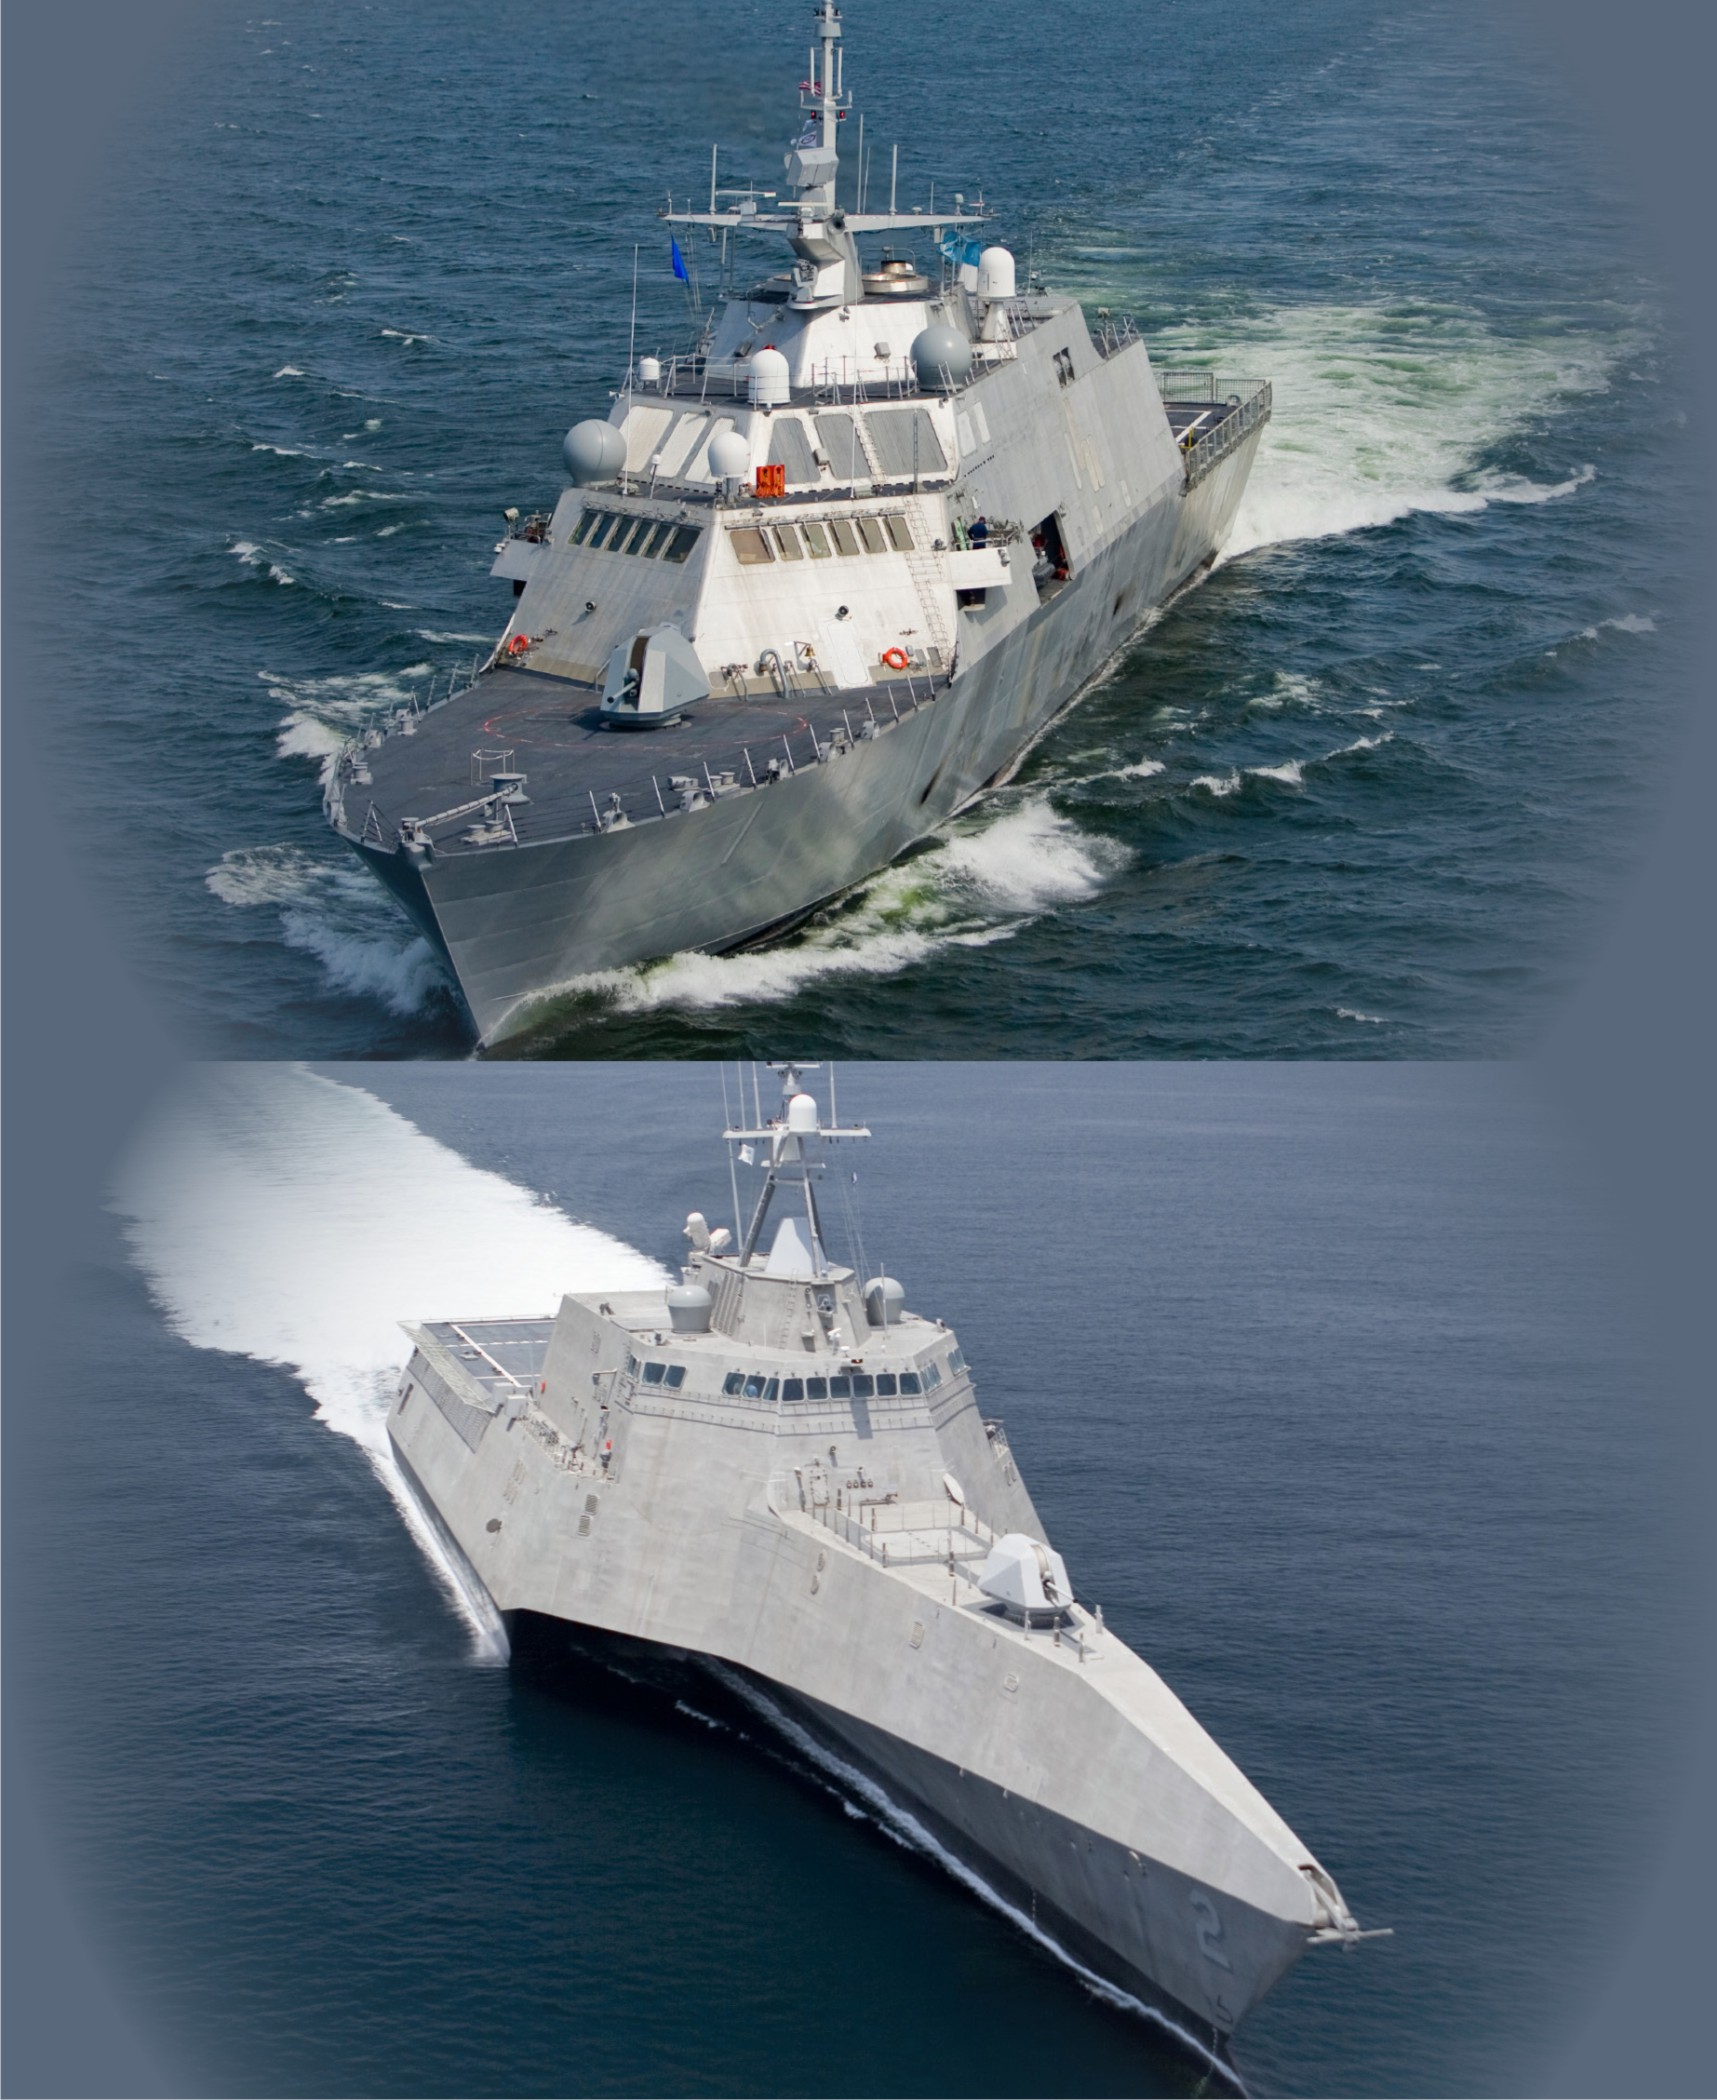 Us navy 101104 n 0000x 002 a composite photograph of the littoral combat ships uss freedom - Uss freedom lcs 1 photos ...